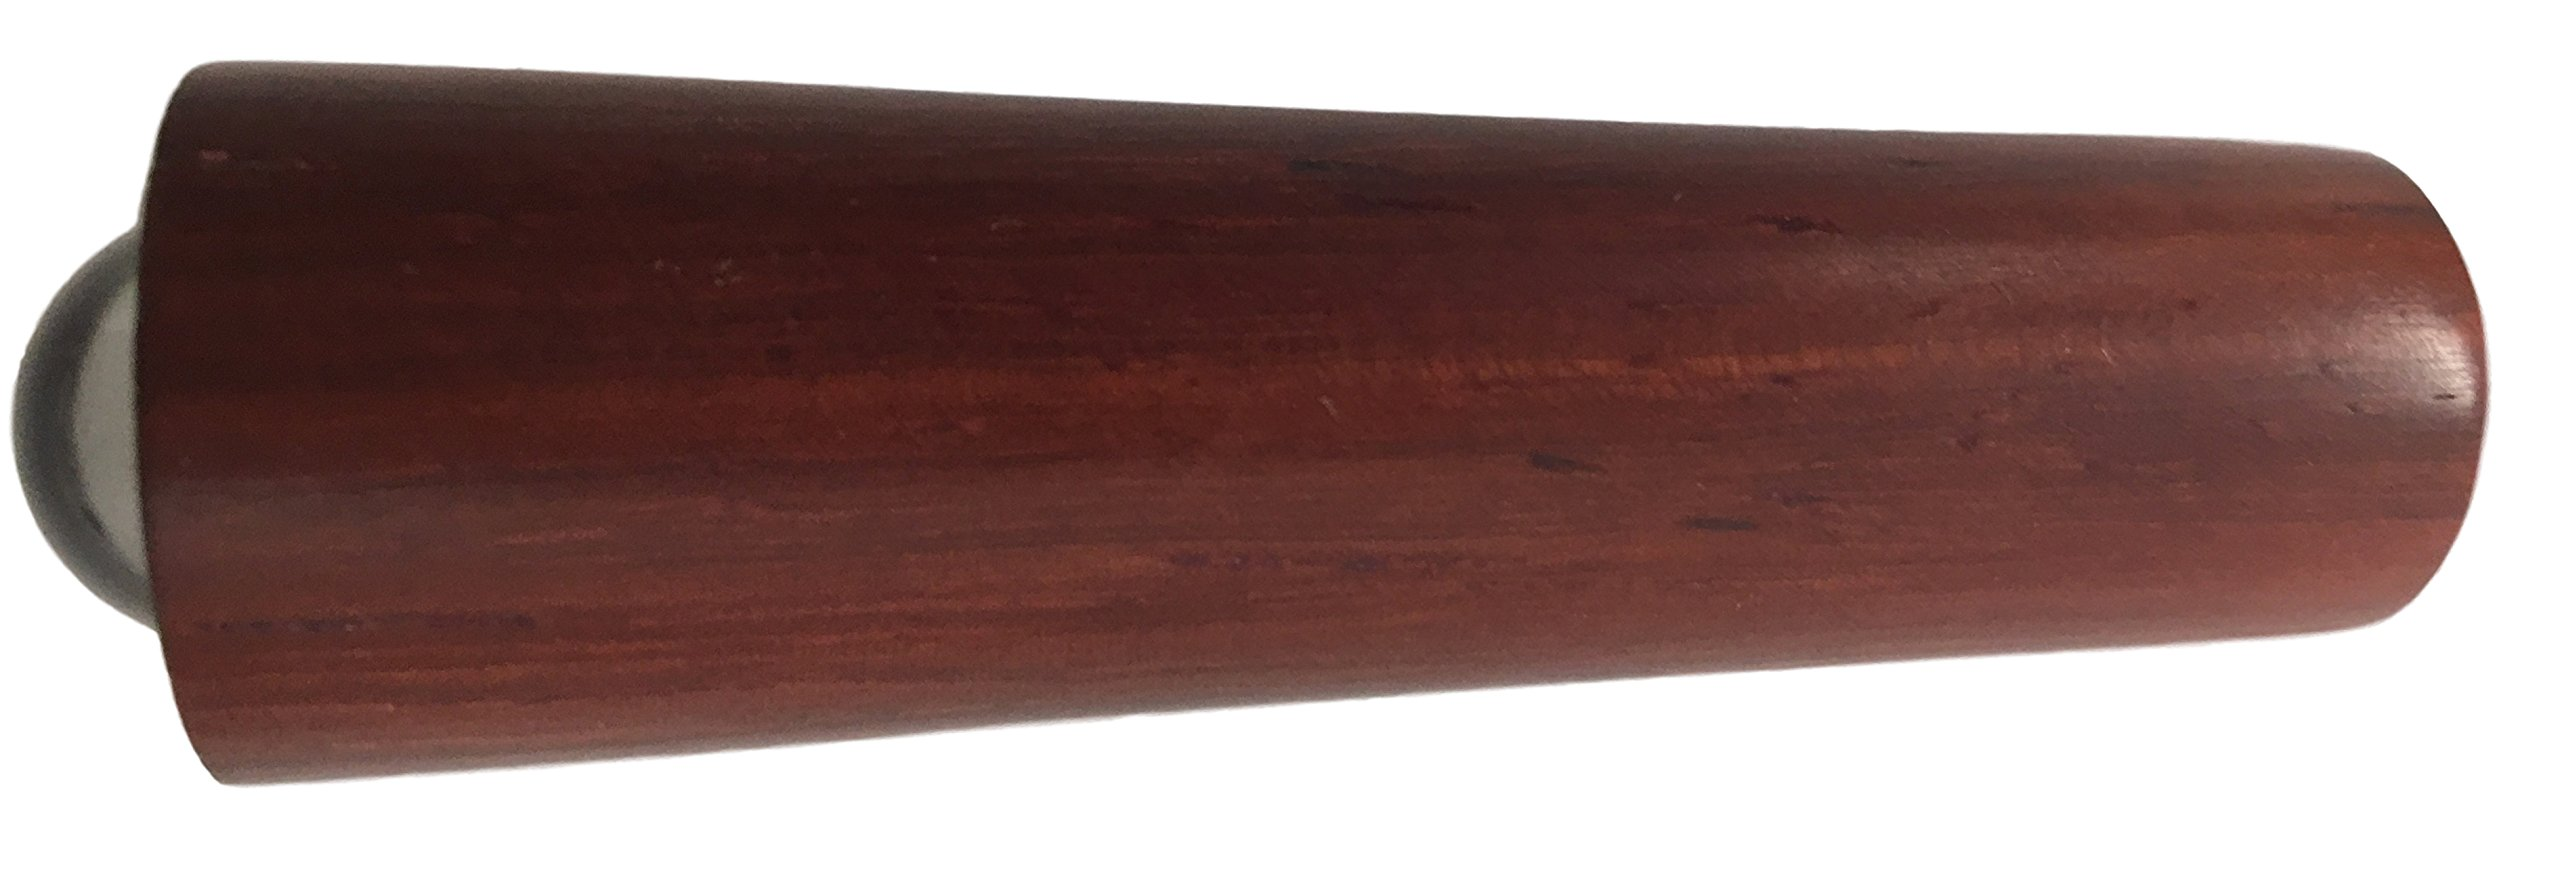 N and J Kaleidoscope Teleidoscope Solid Padauk Wood, Mini 3 Inch Long, Solid Padauk by N and J